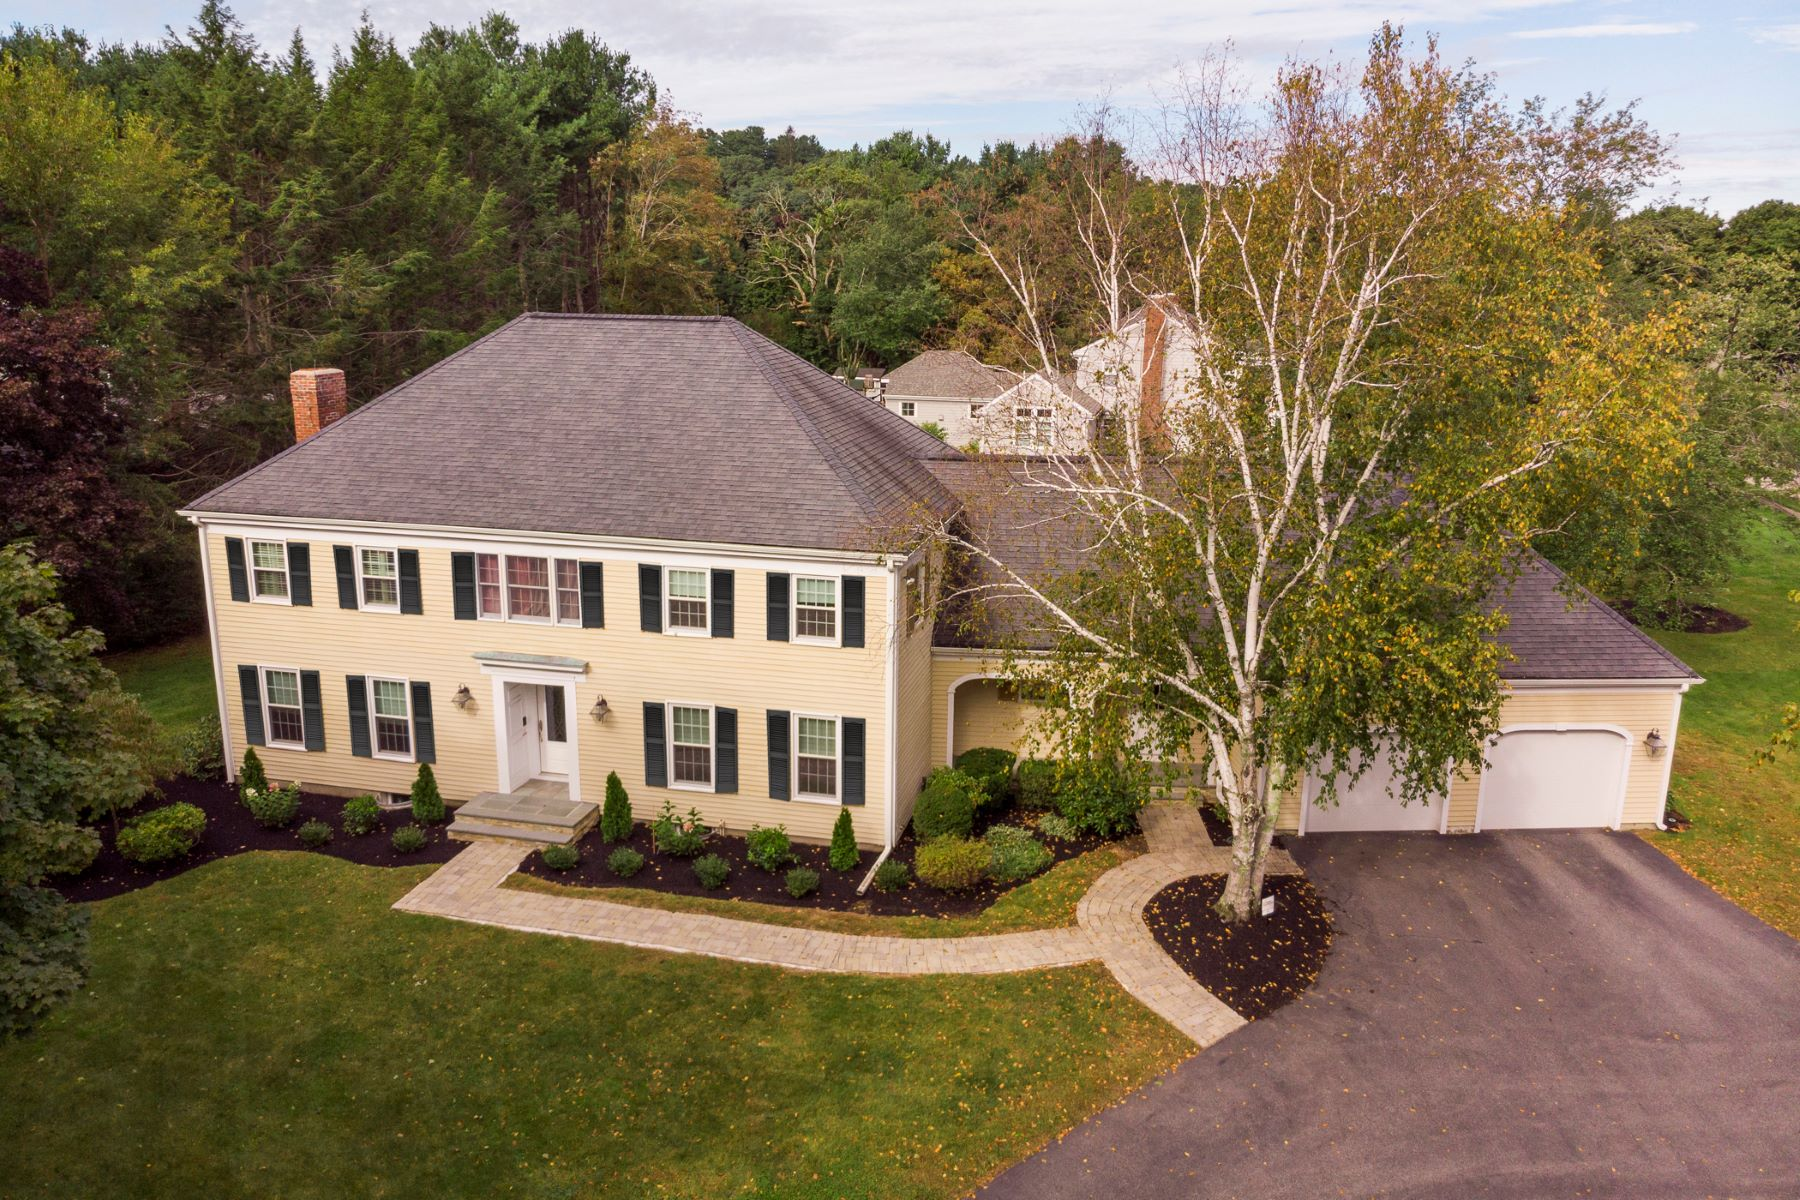 Single Family Home for Active at 25 Saddle Club Road, Lexington 25 Saddle Club Rd Lexington, Massachusetts 02420 United States